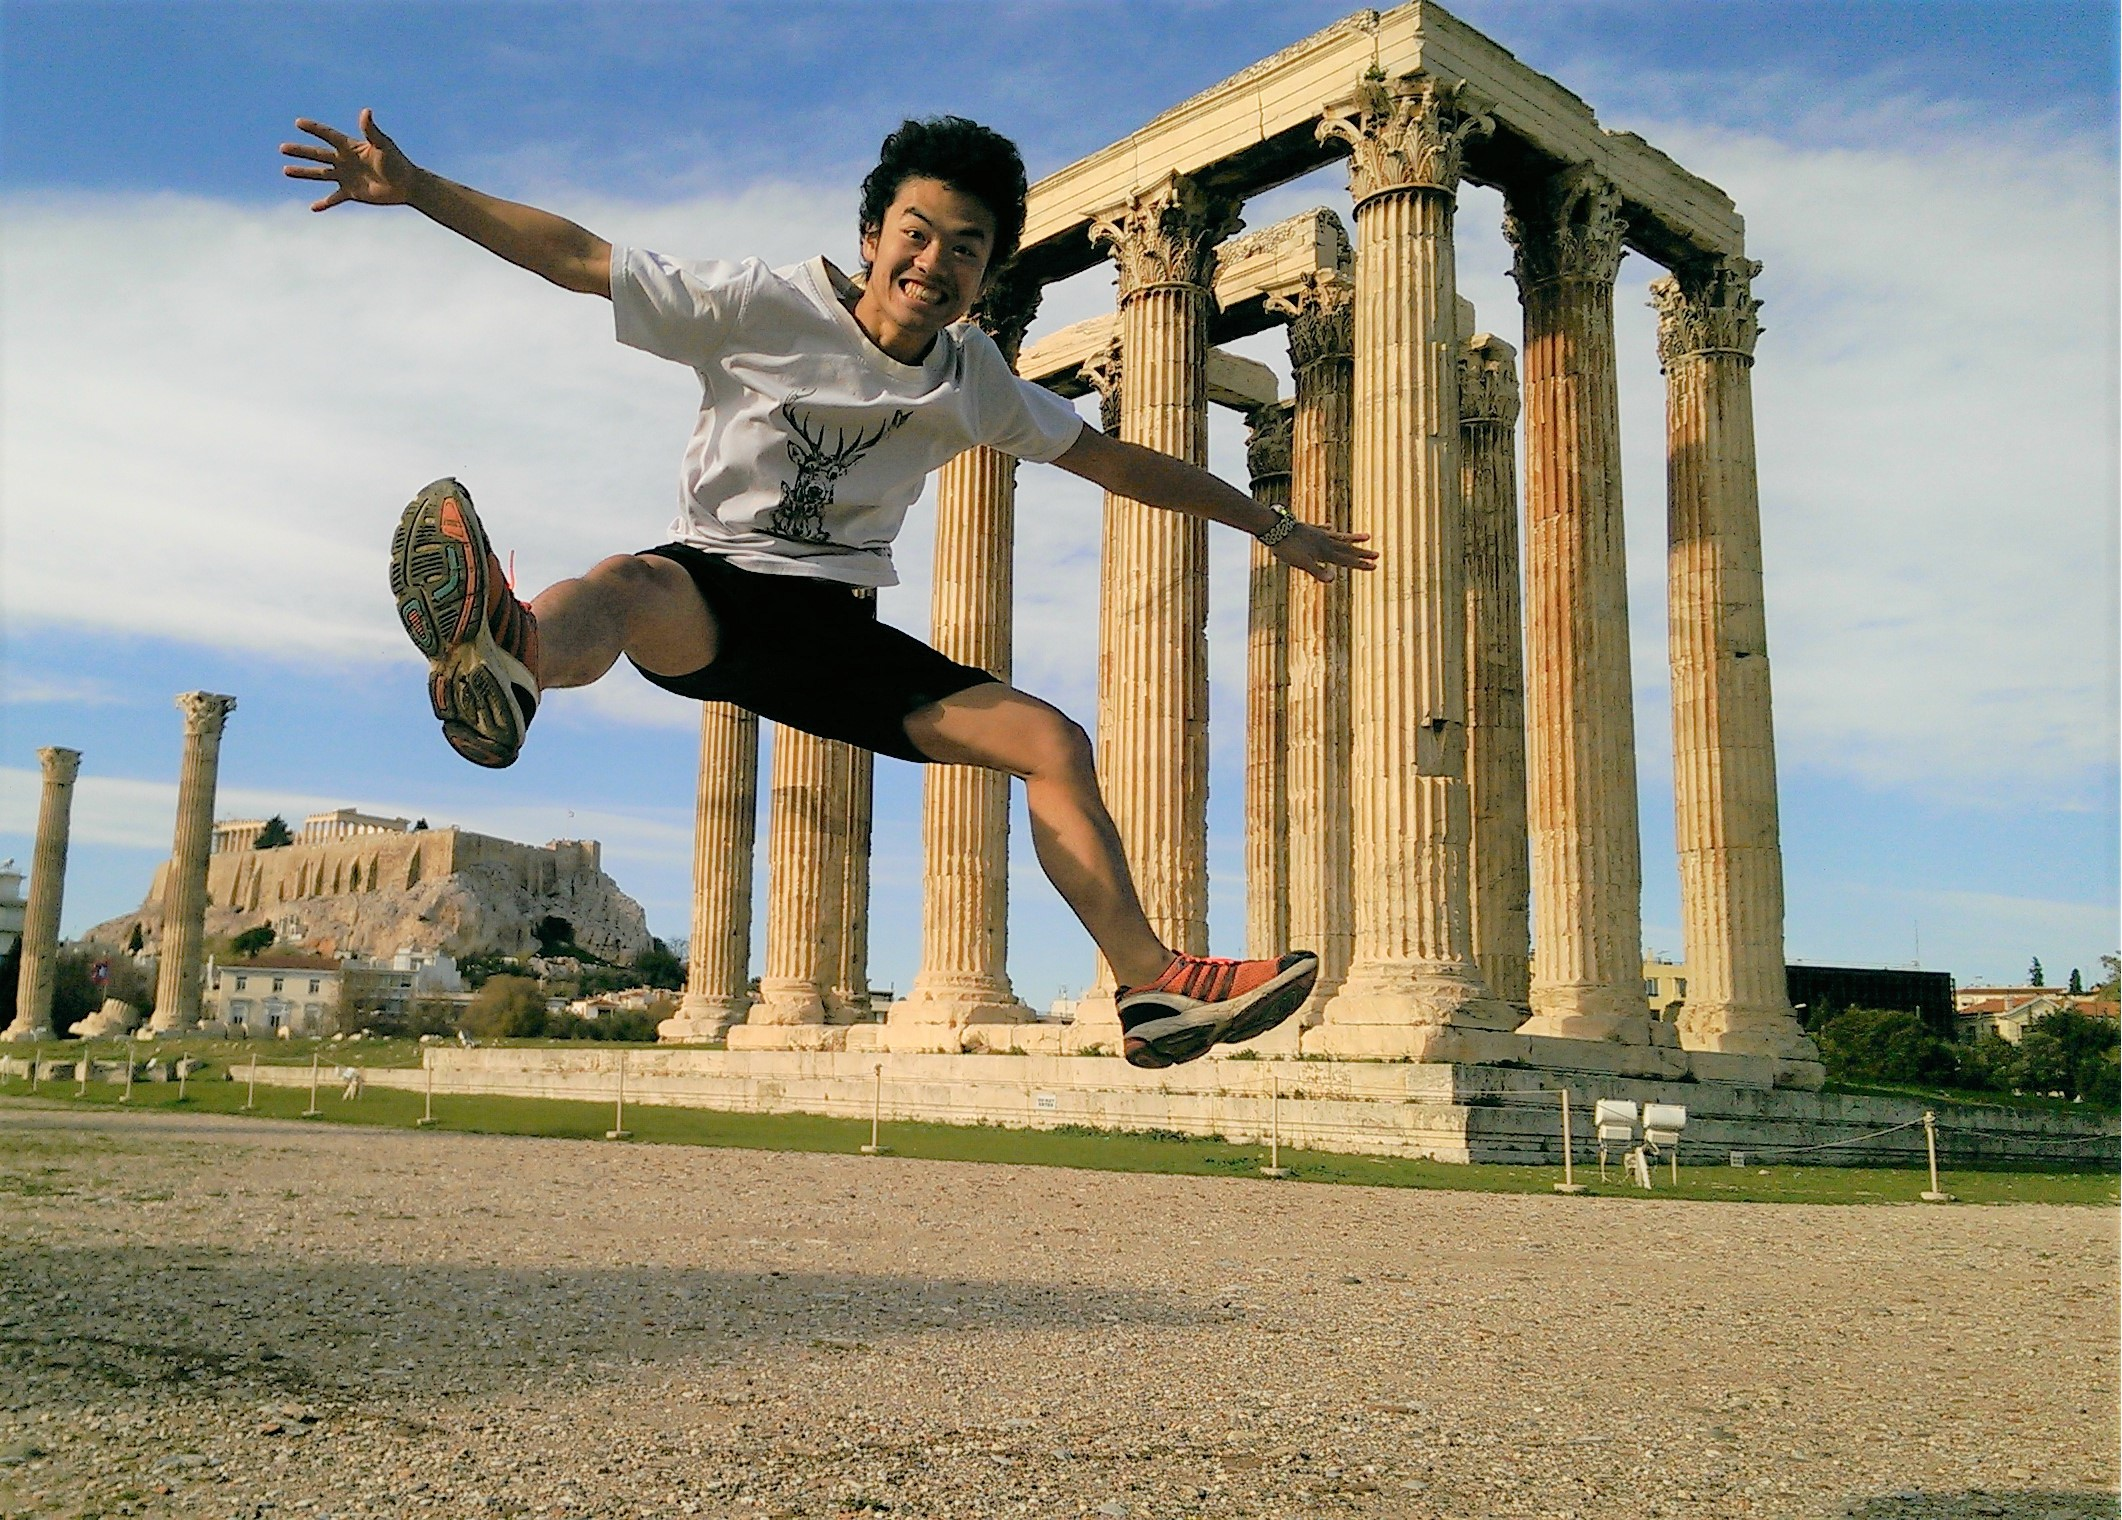 An enthusiastic student jumping in front of Greek ruins